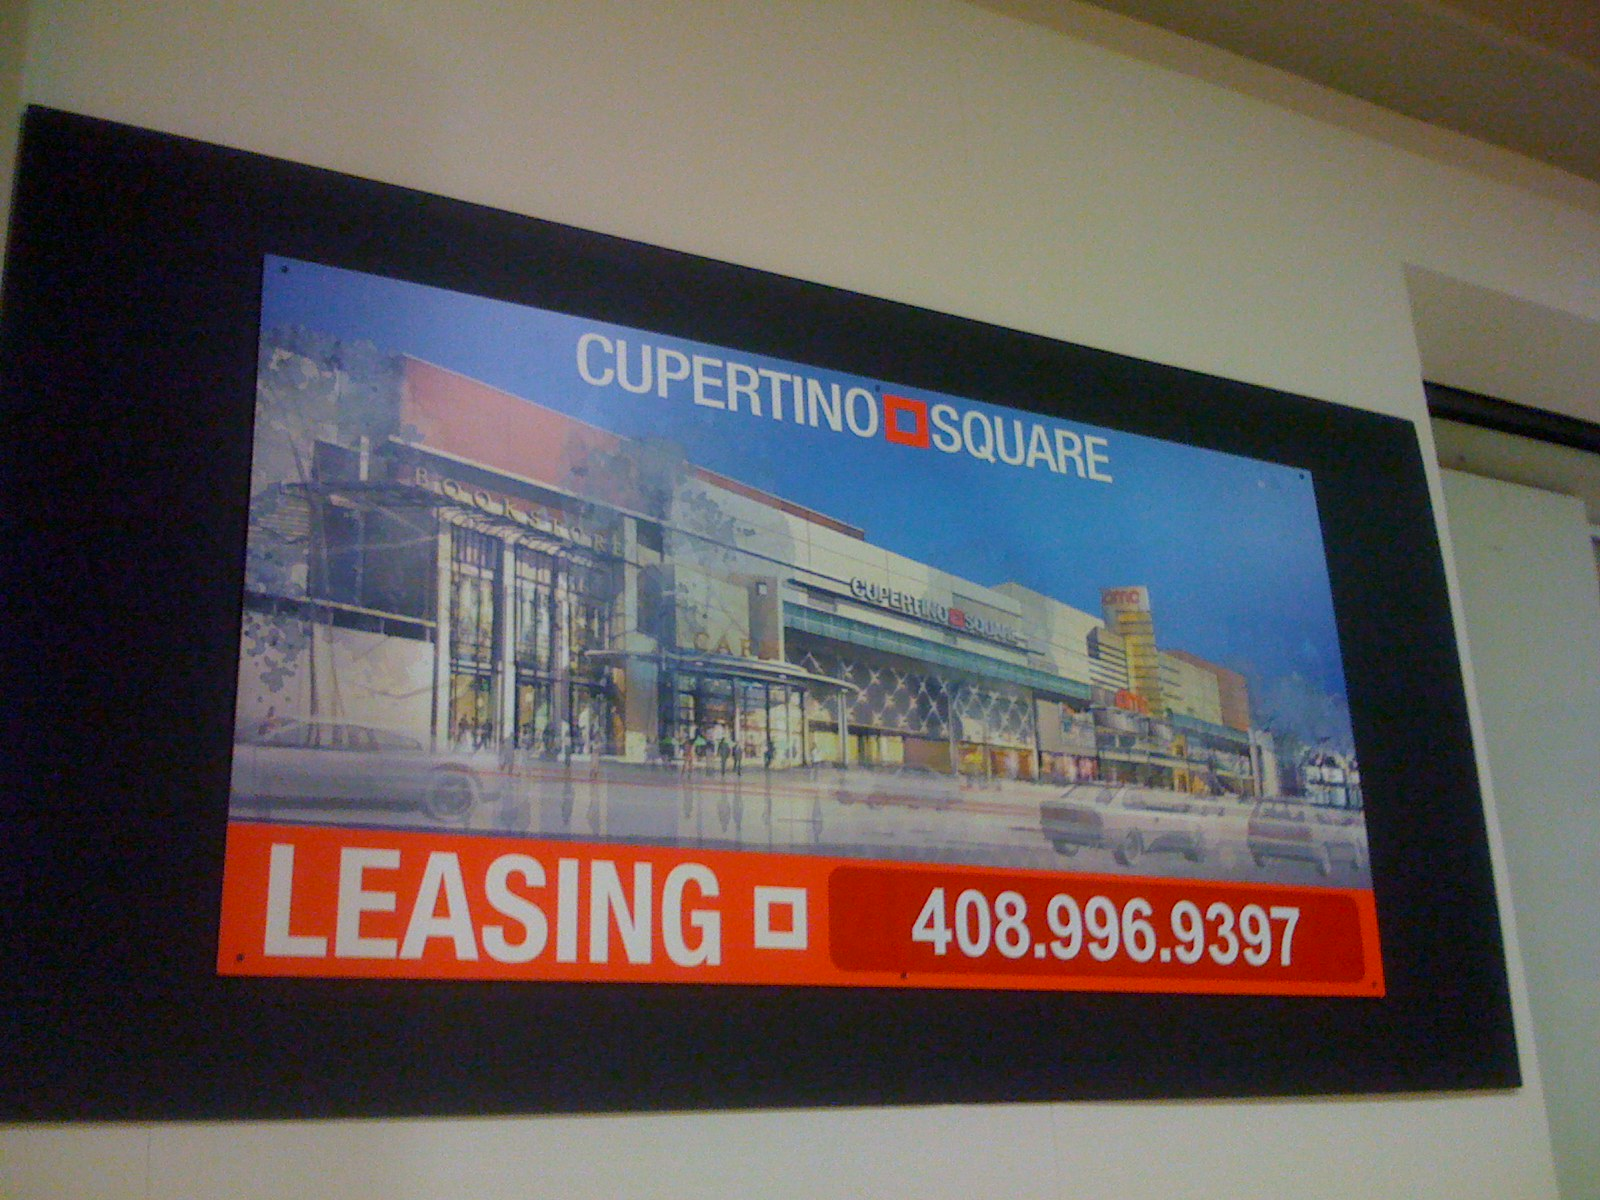 Cupertino Square, formerly Vallco Fashion Park, in Cupertino, California